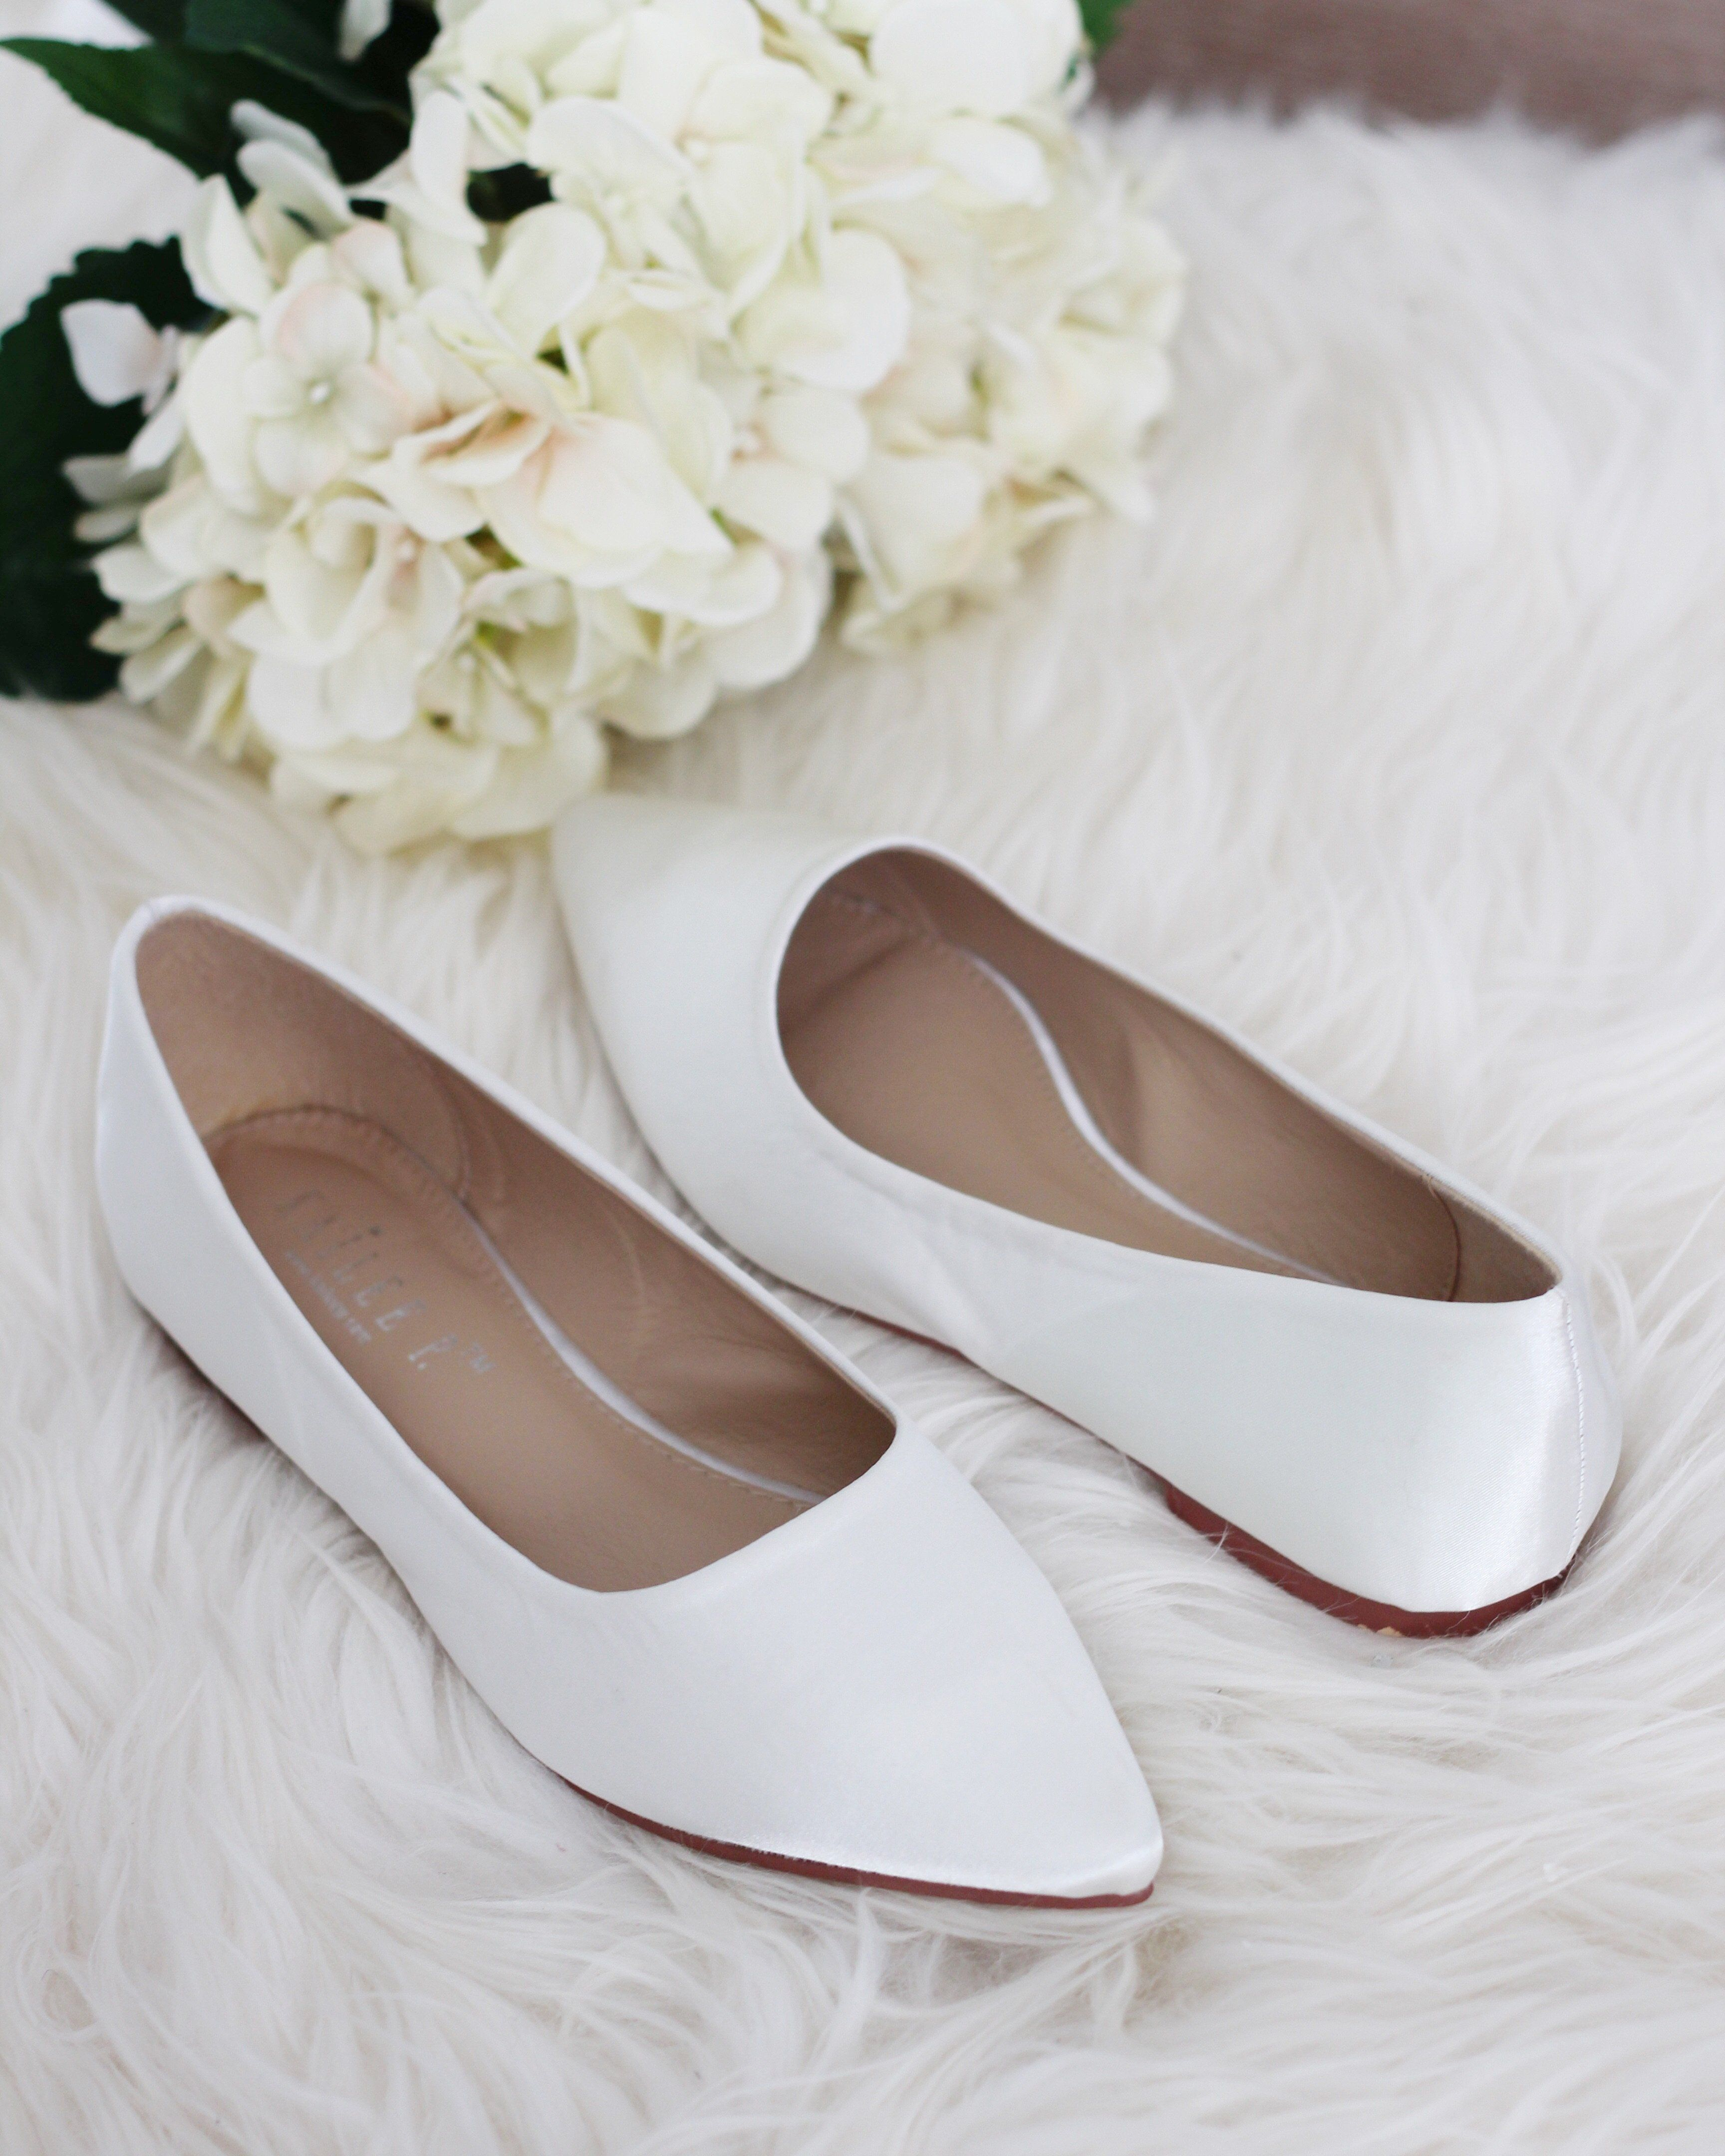 Off White Satin Pointy Toe Women Flats Ivory Wedding Shoes Womens White Flats Bridesmaid Shoes